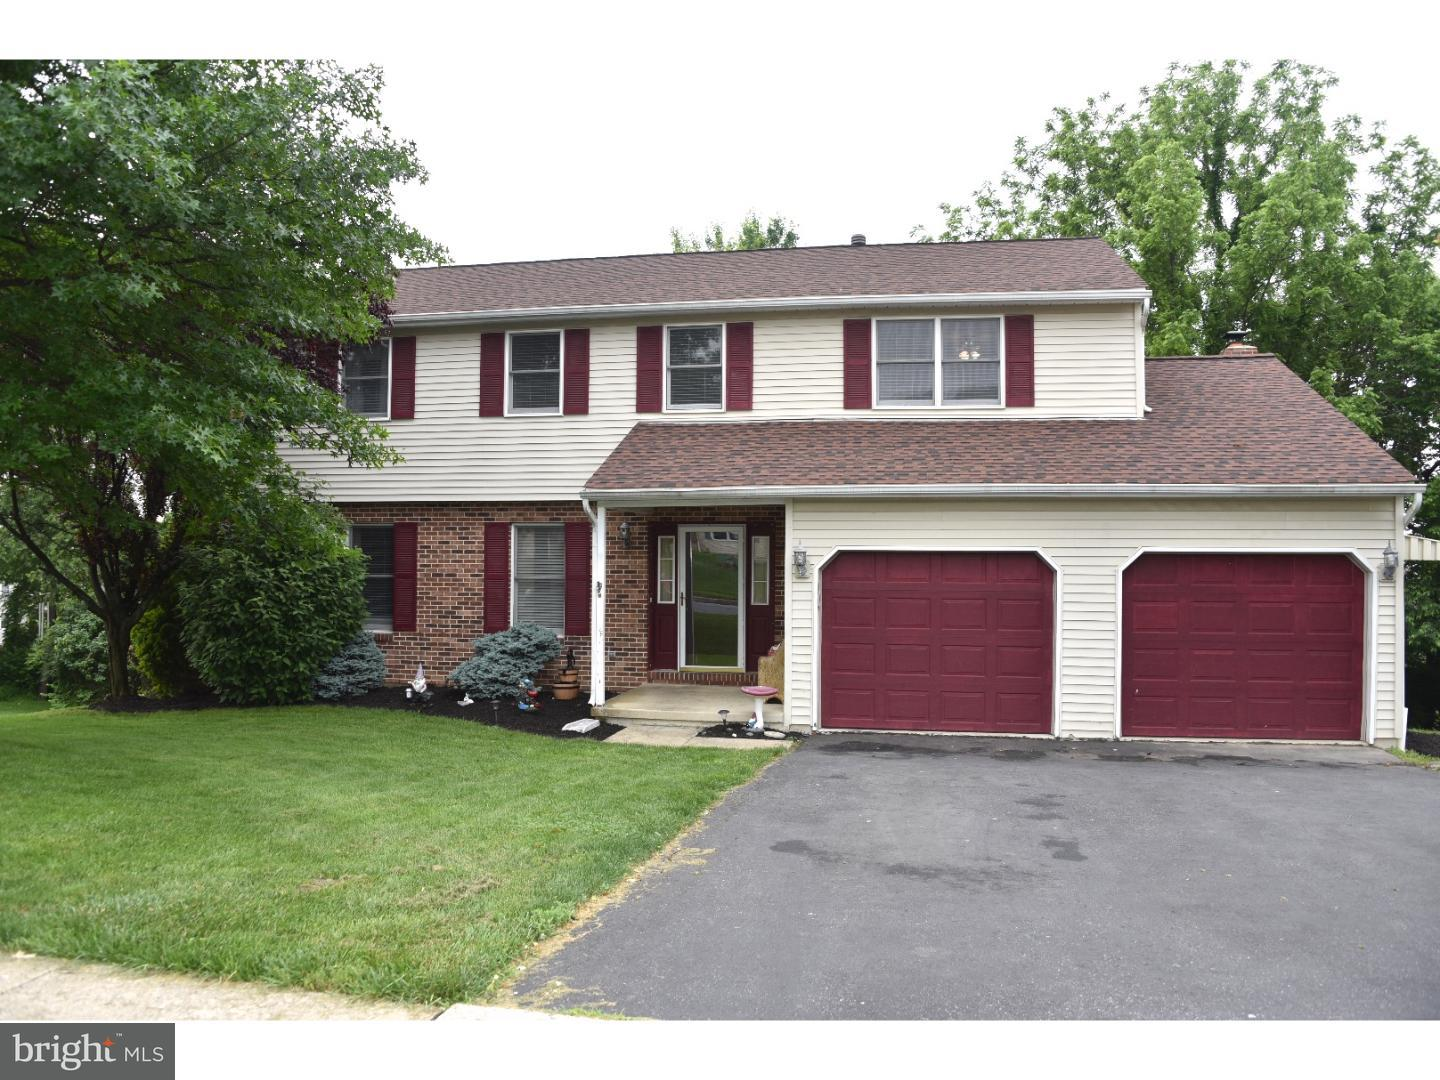 3103 DANIEL DR, READING - Listed at $259,900, READING